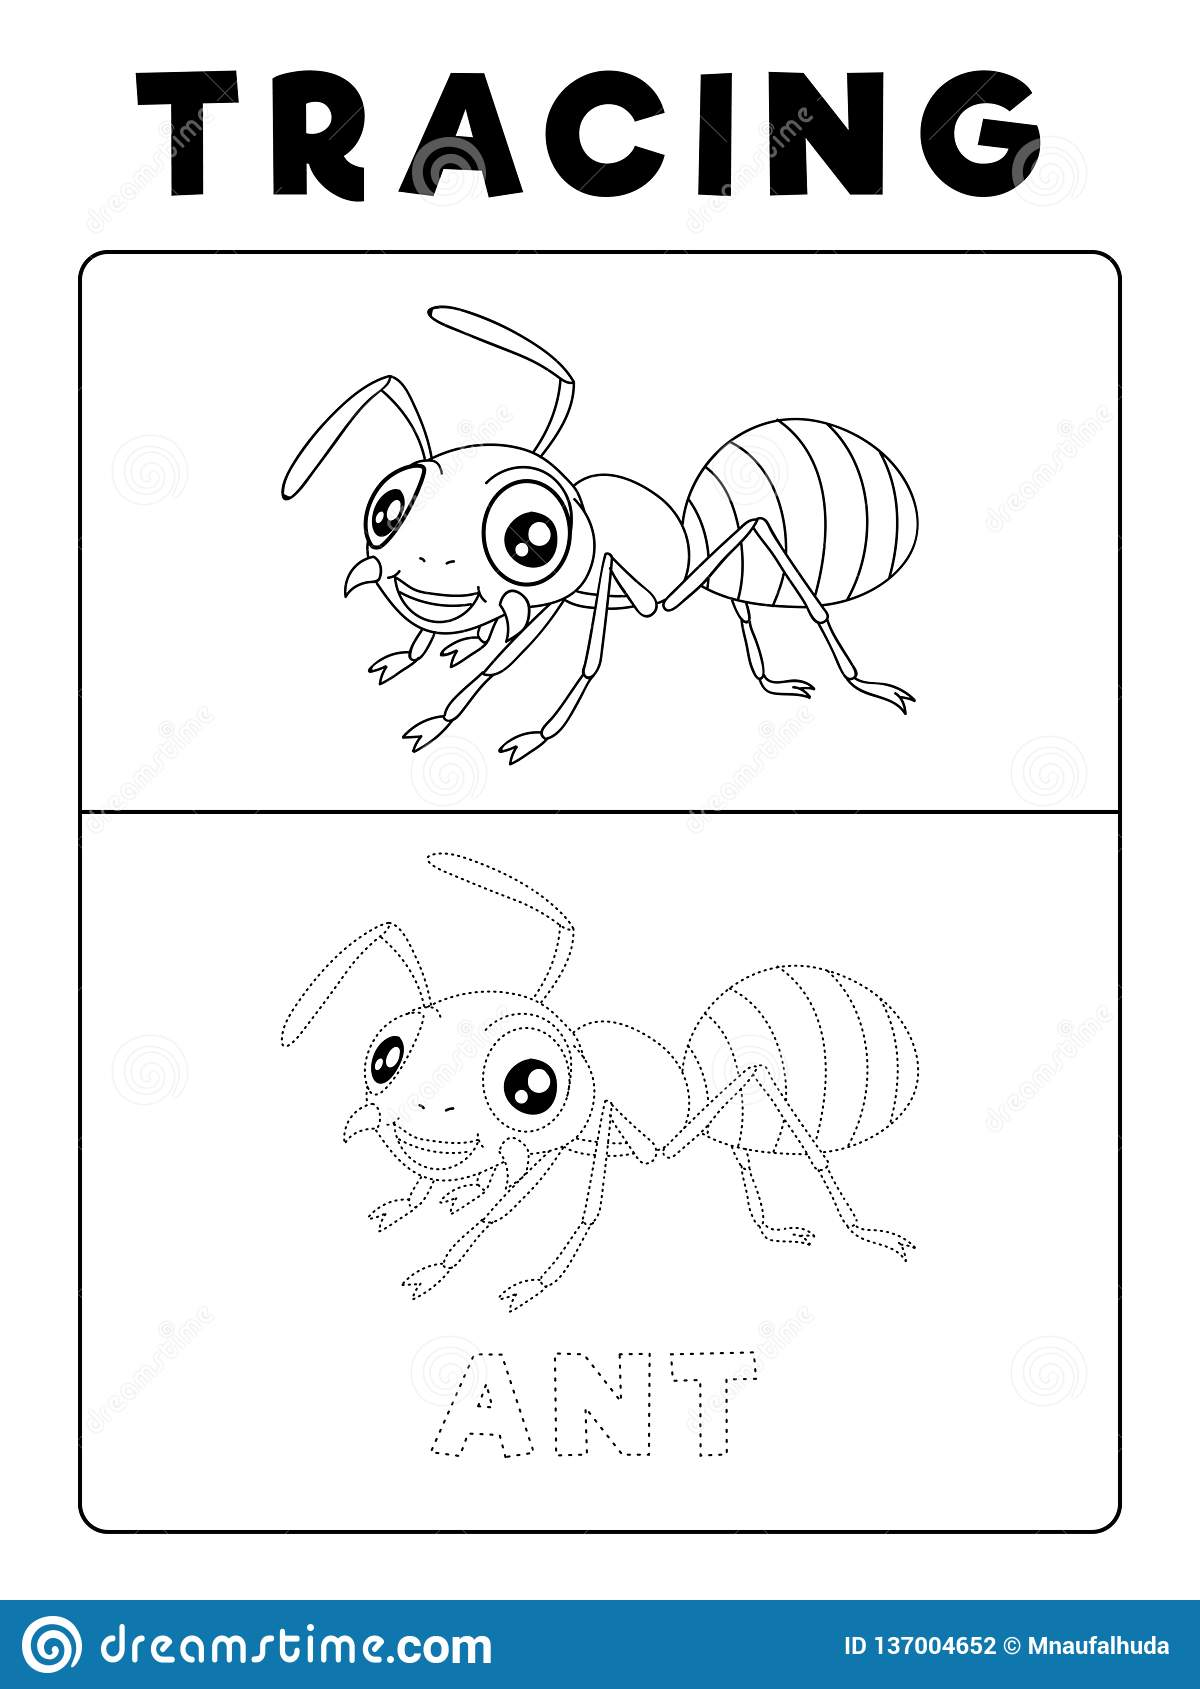 Funny Ant Insect Animal Tracing Book With Example Preschool Worksheet For Practicing Fine Motor